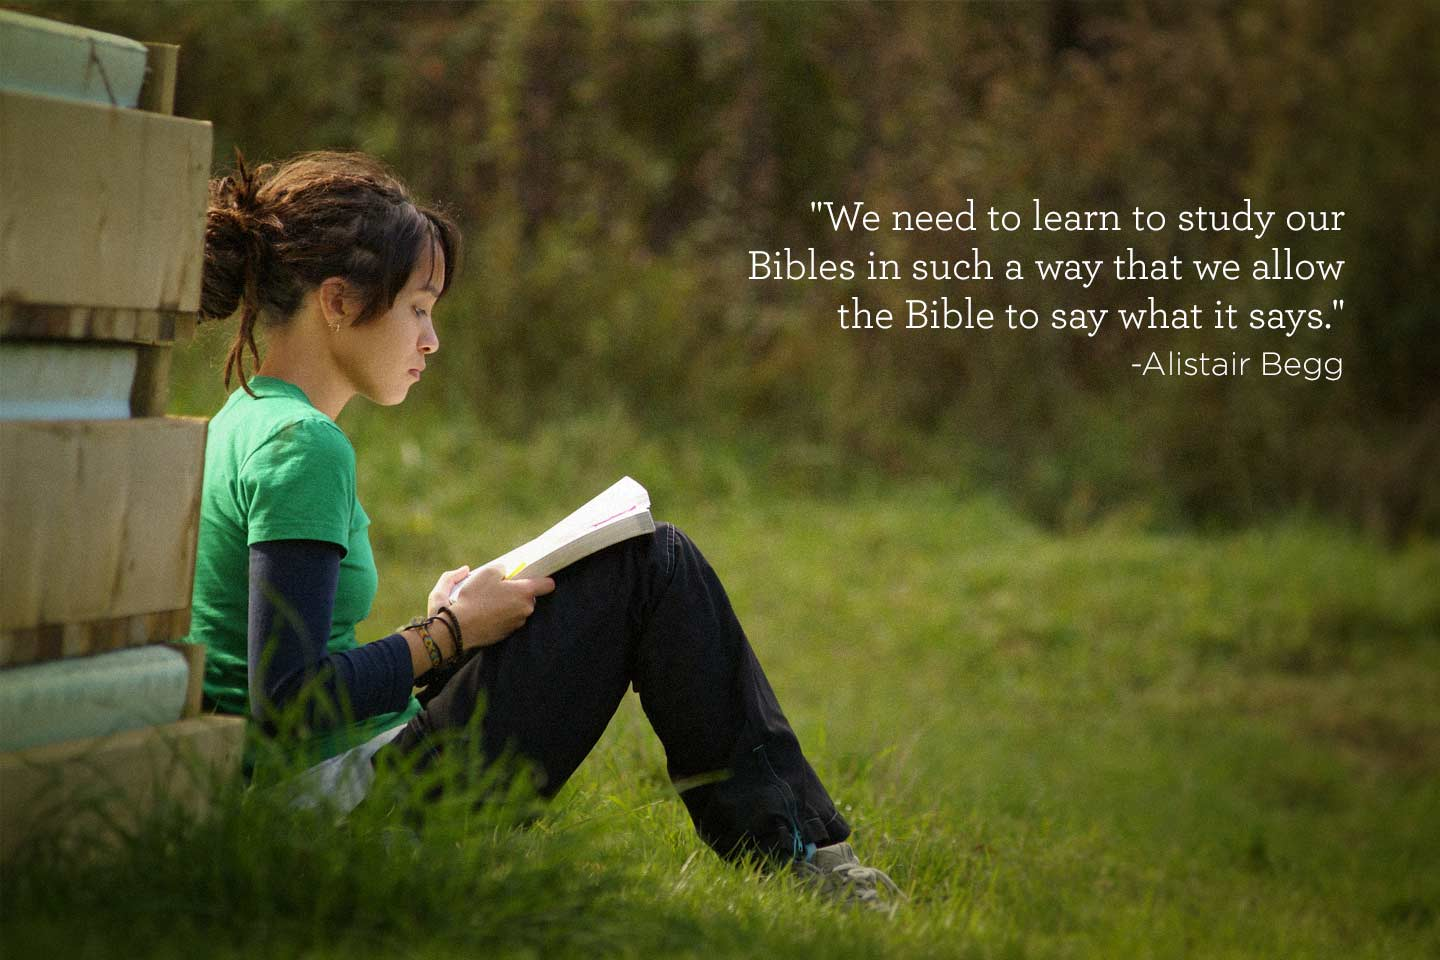 thumbnail image for Learn to Study our Bibles